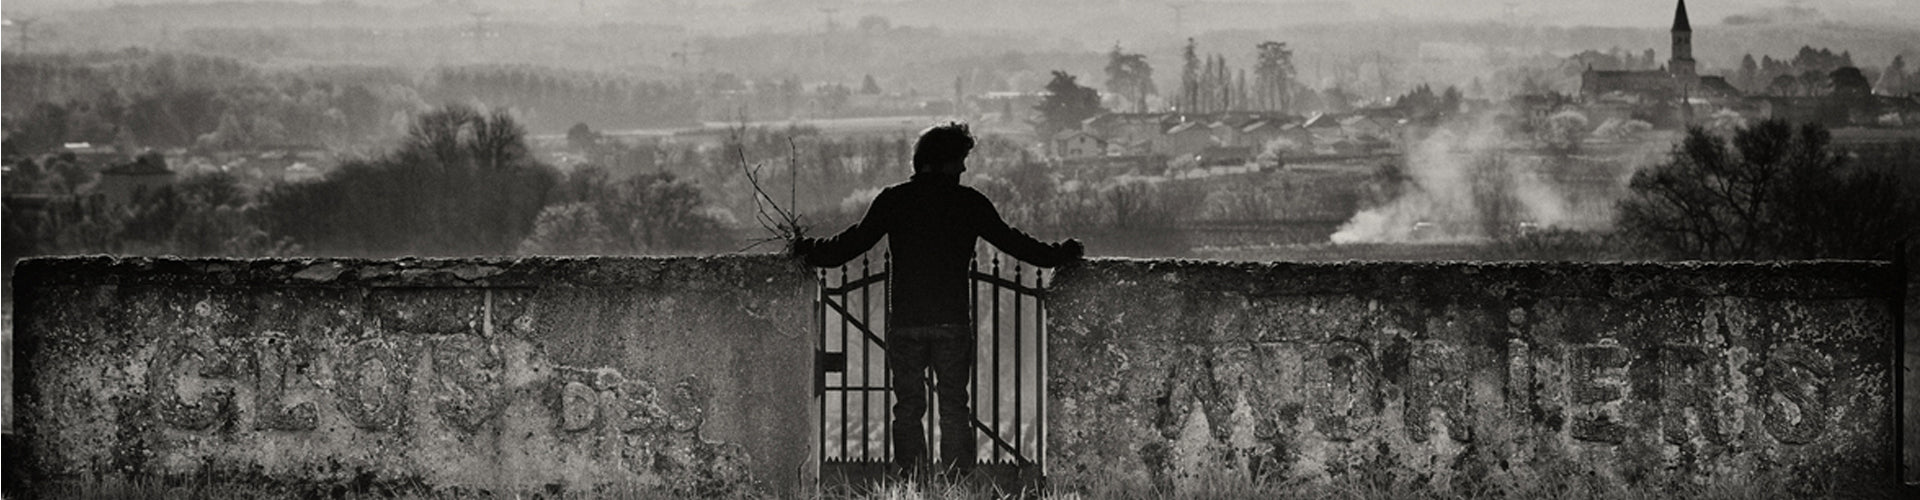 Black and White Image of Cédric Chignard looking over the Moriers lieu-dit in Fleurie